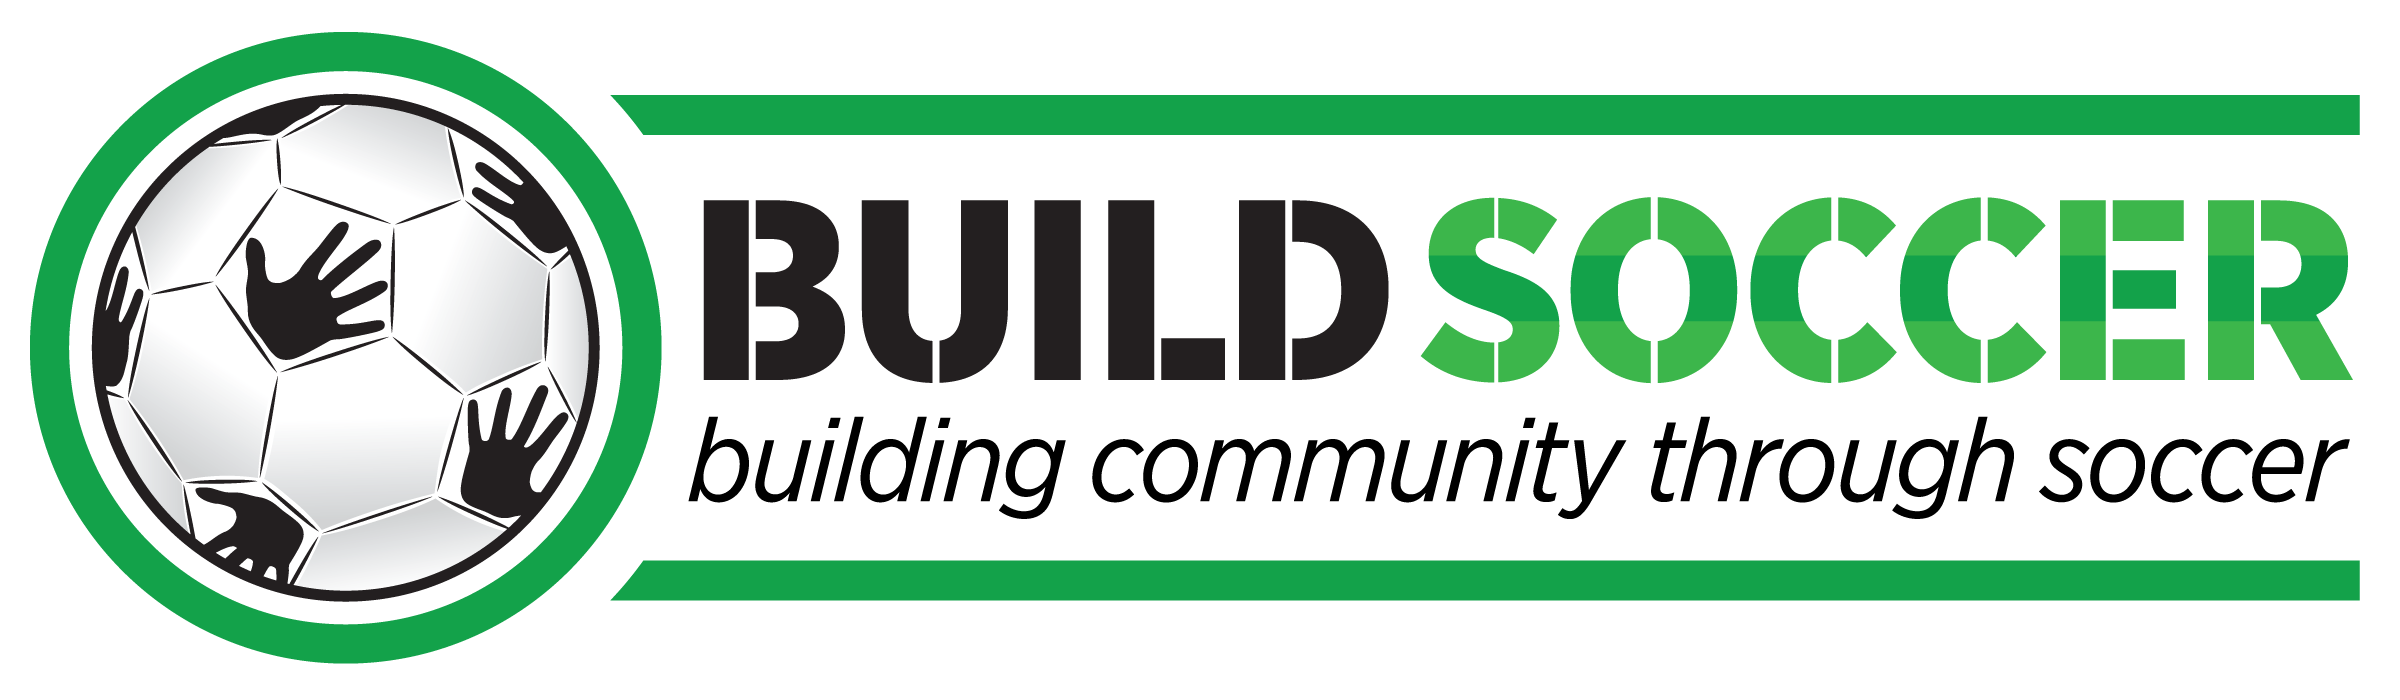 BuildSoccer